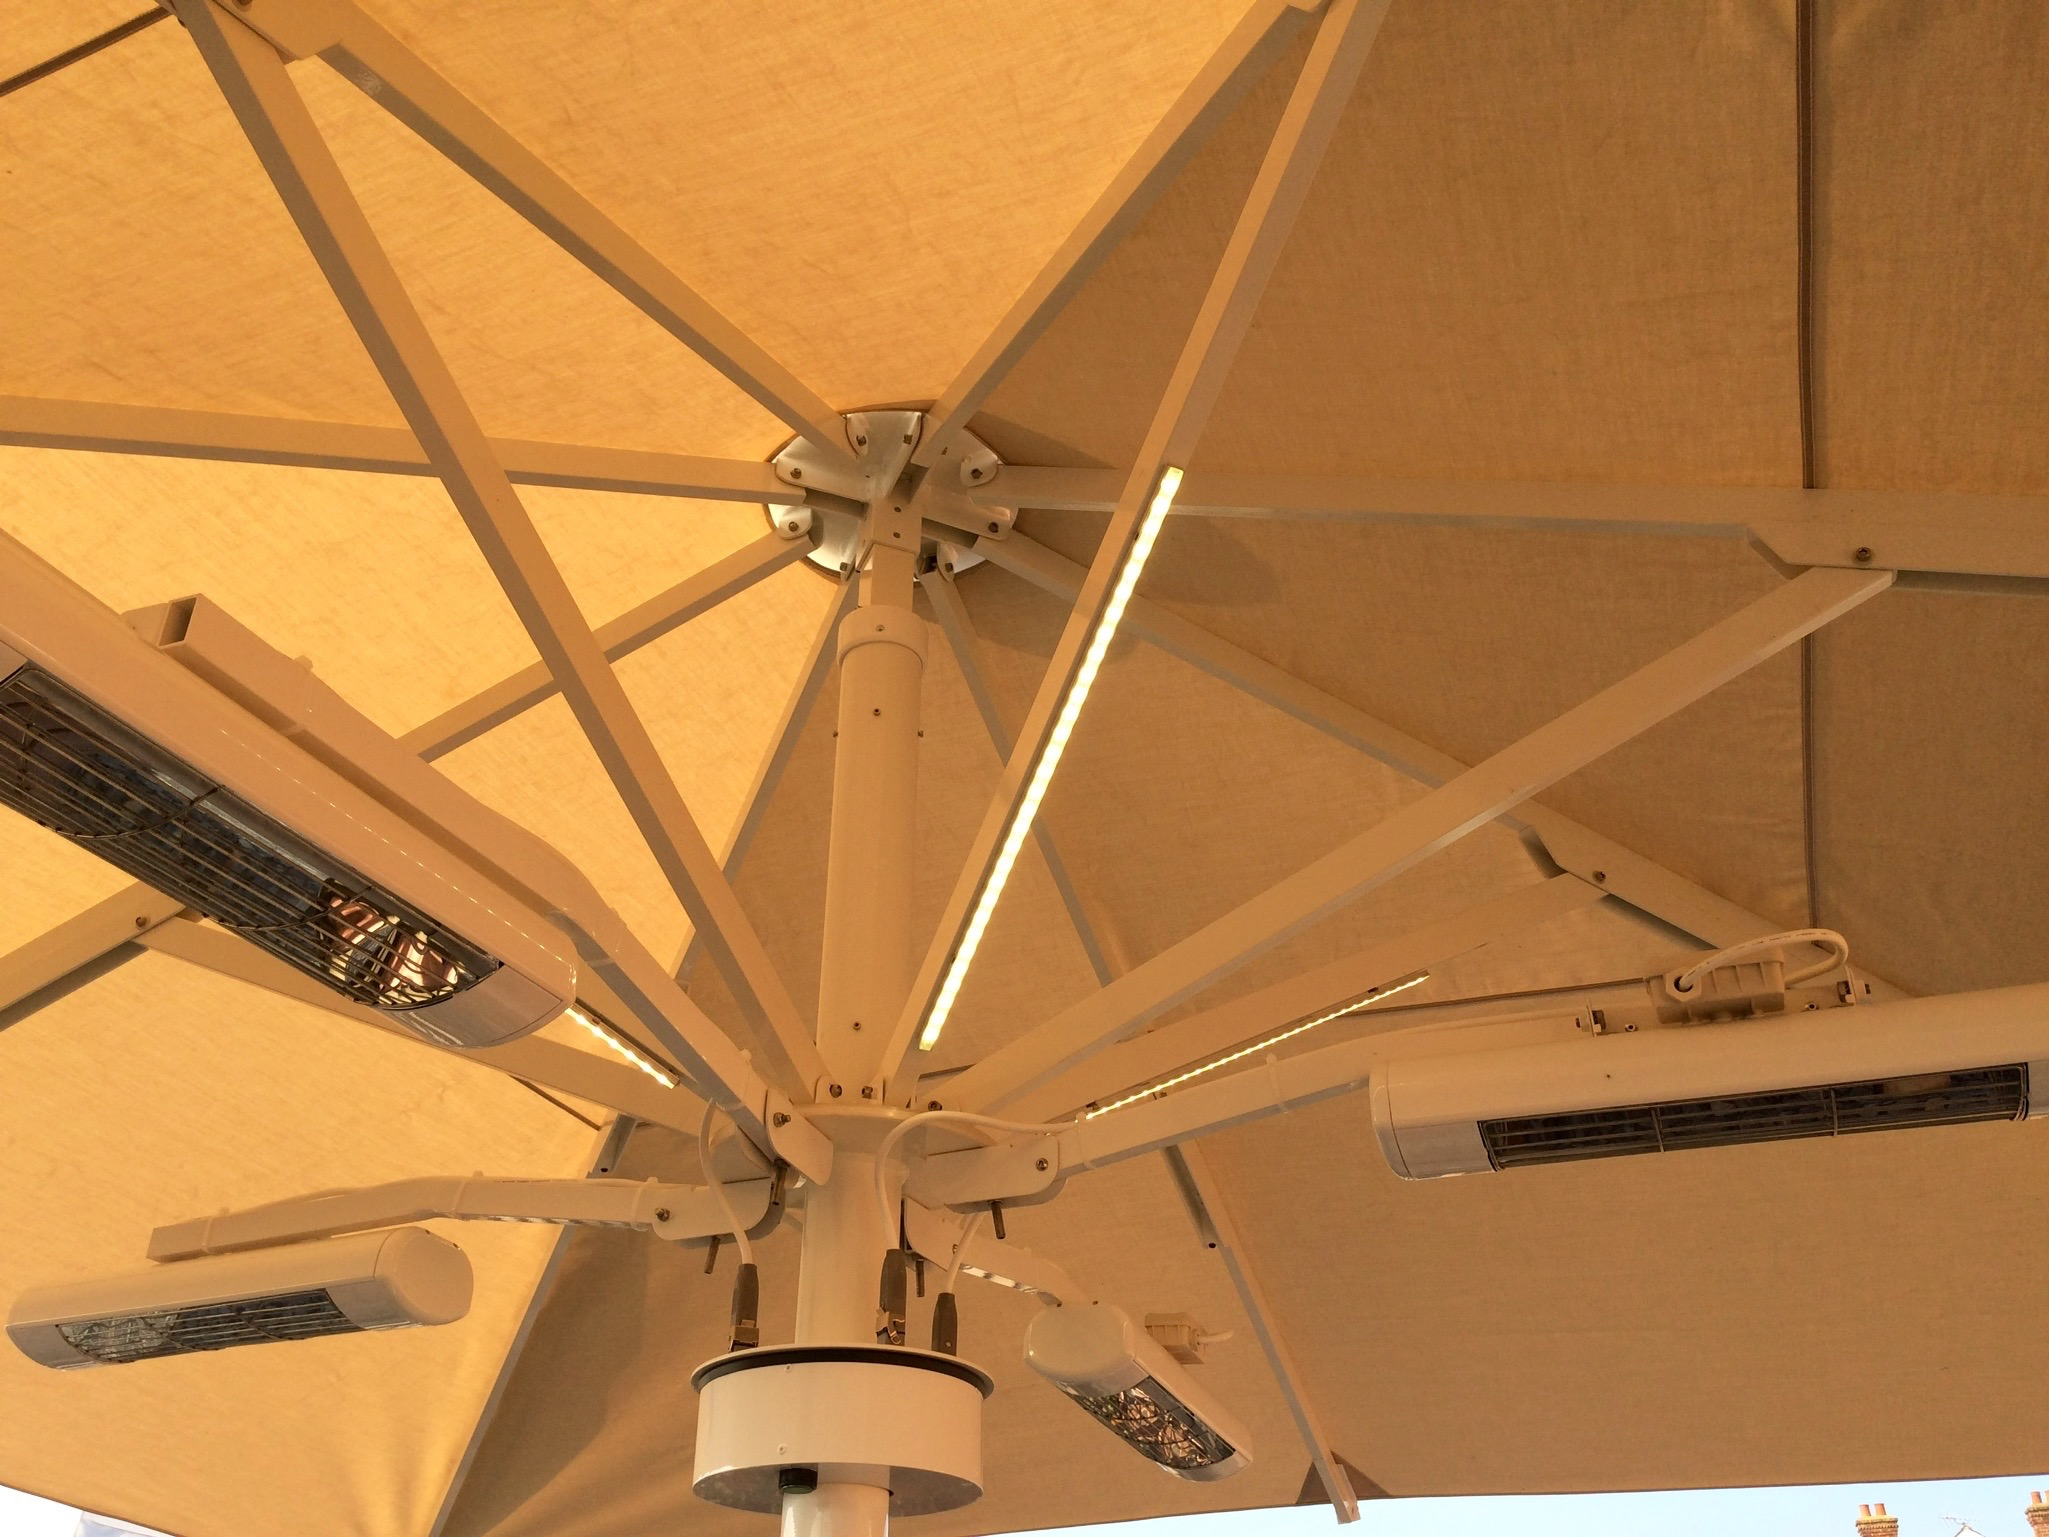 Pub Umbrella with Lights